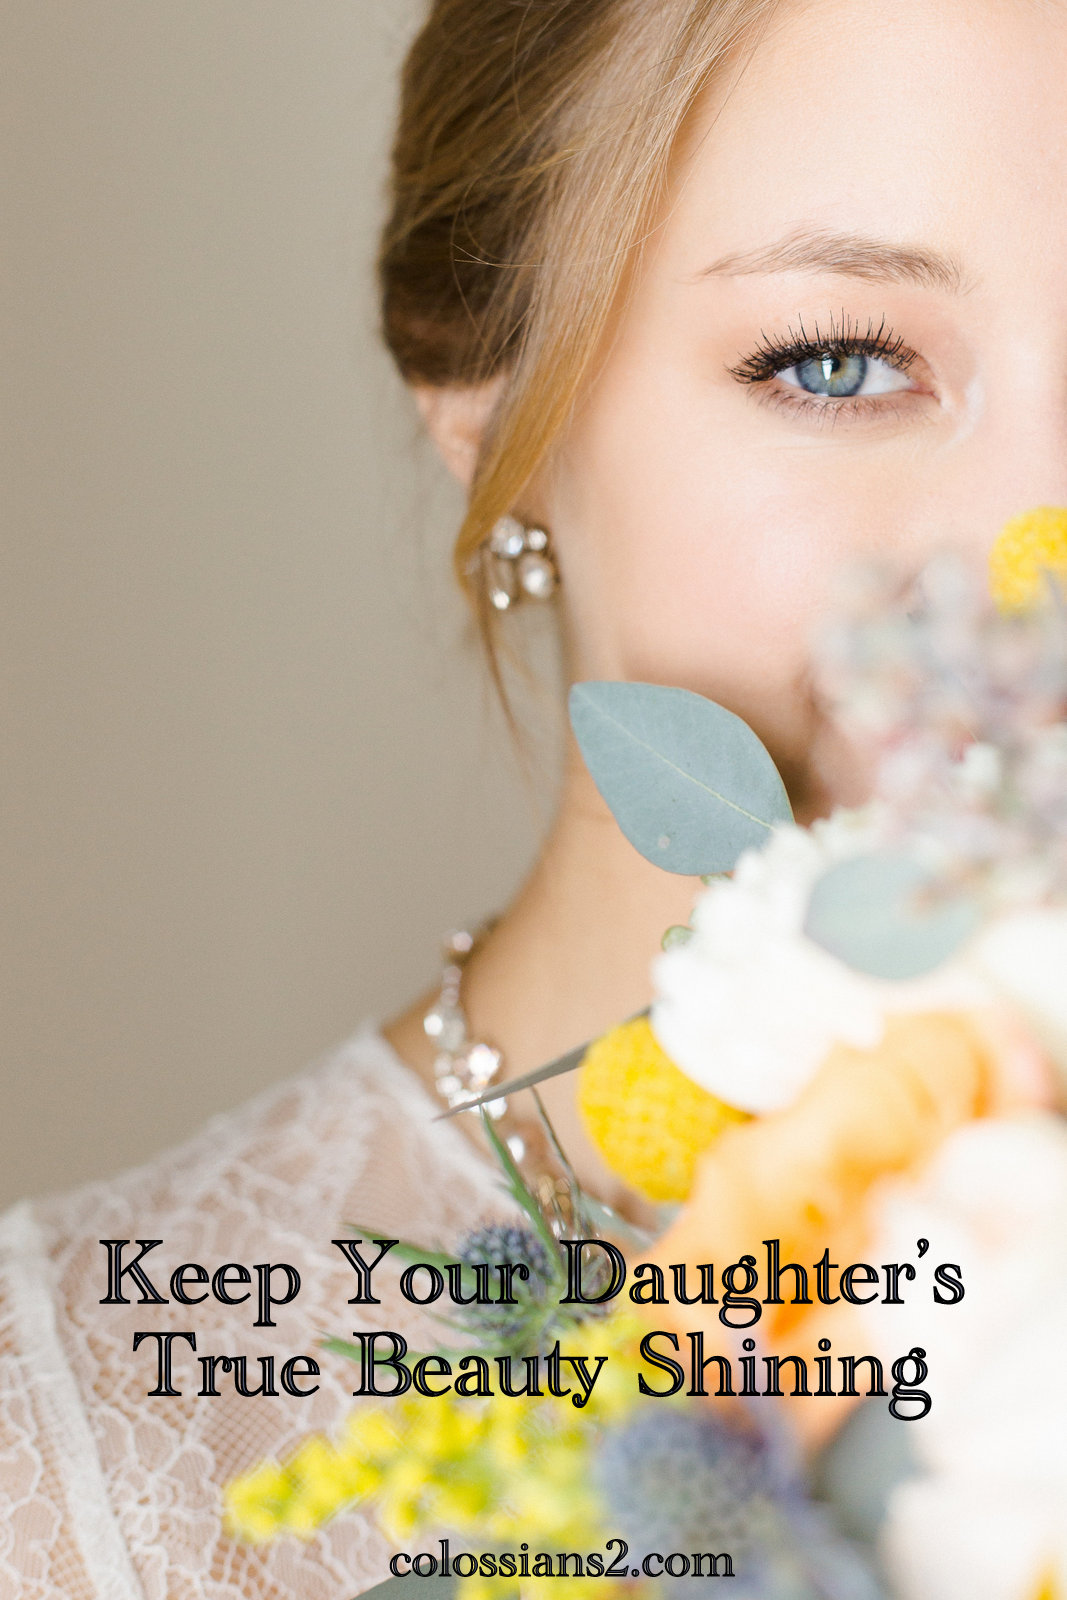 PHysical beauty comes and goes, so how do we help our daughters keep their true beauty shining?